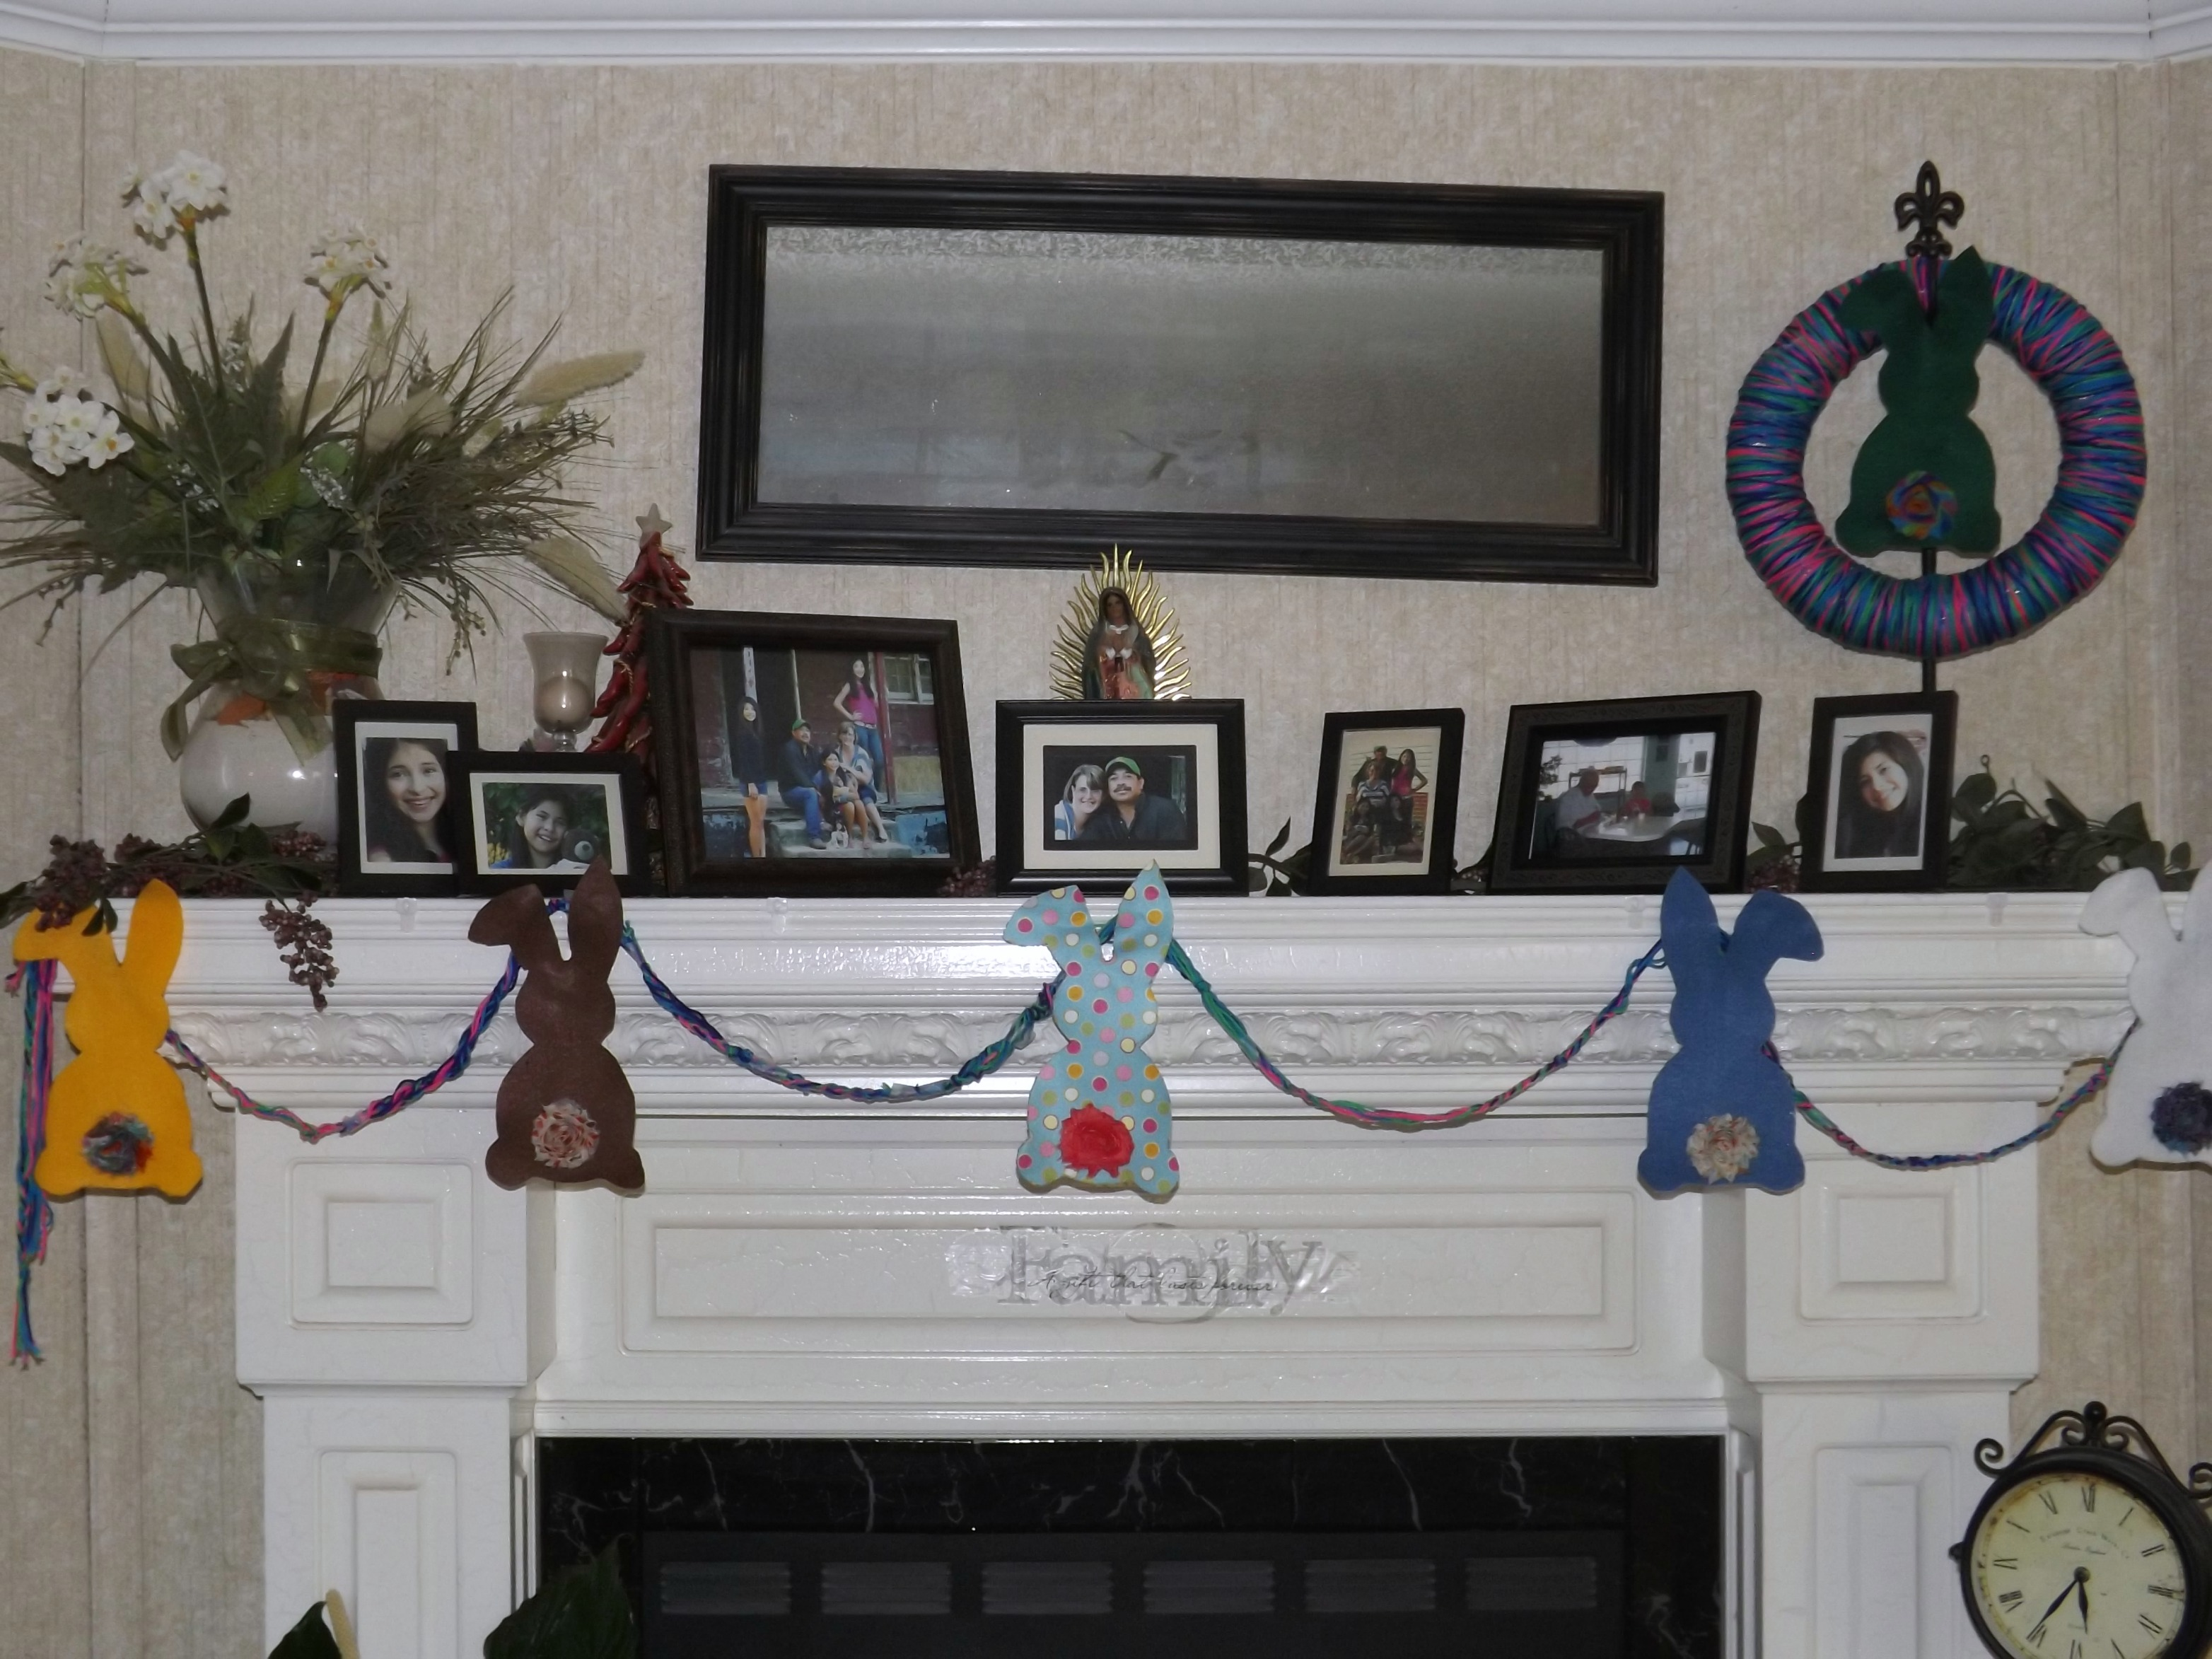 How to create a bunny inspired mantel display adventures for Mantel display ideas